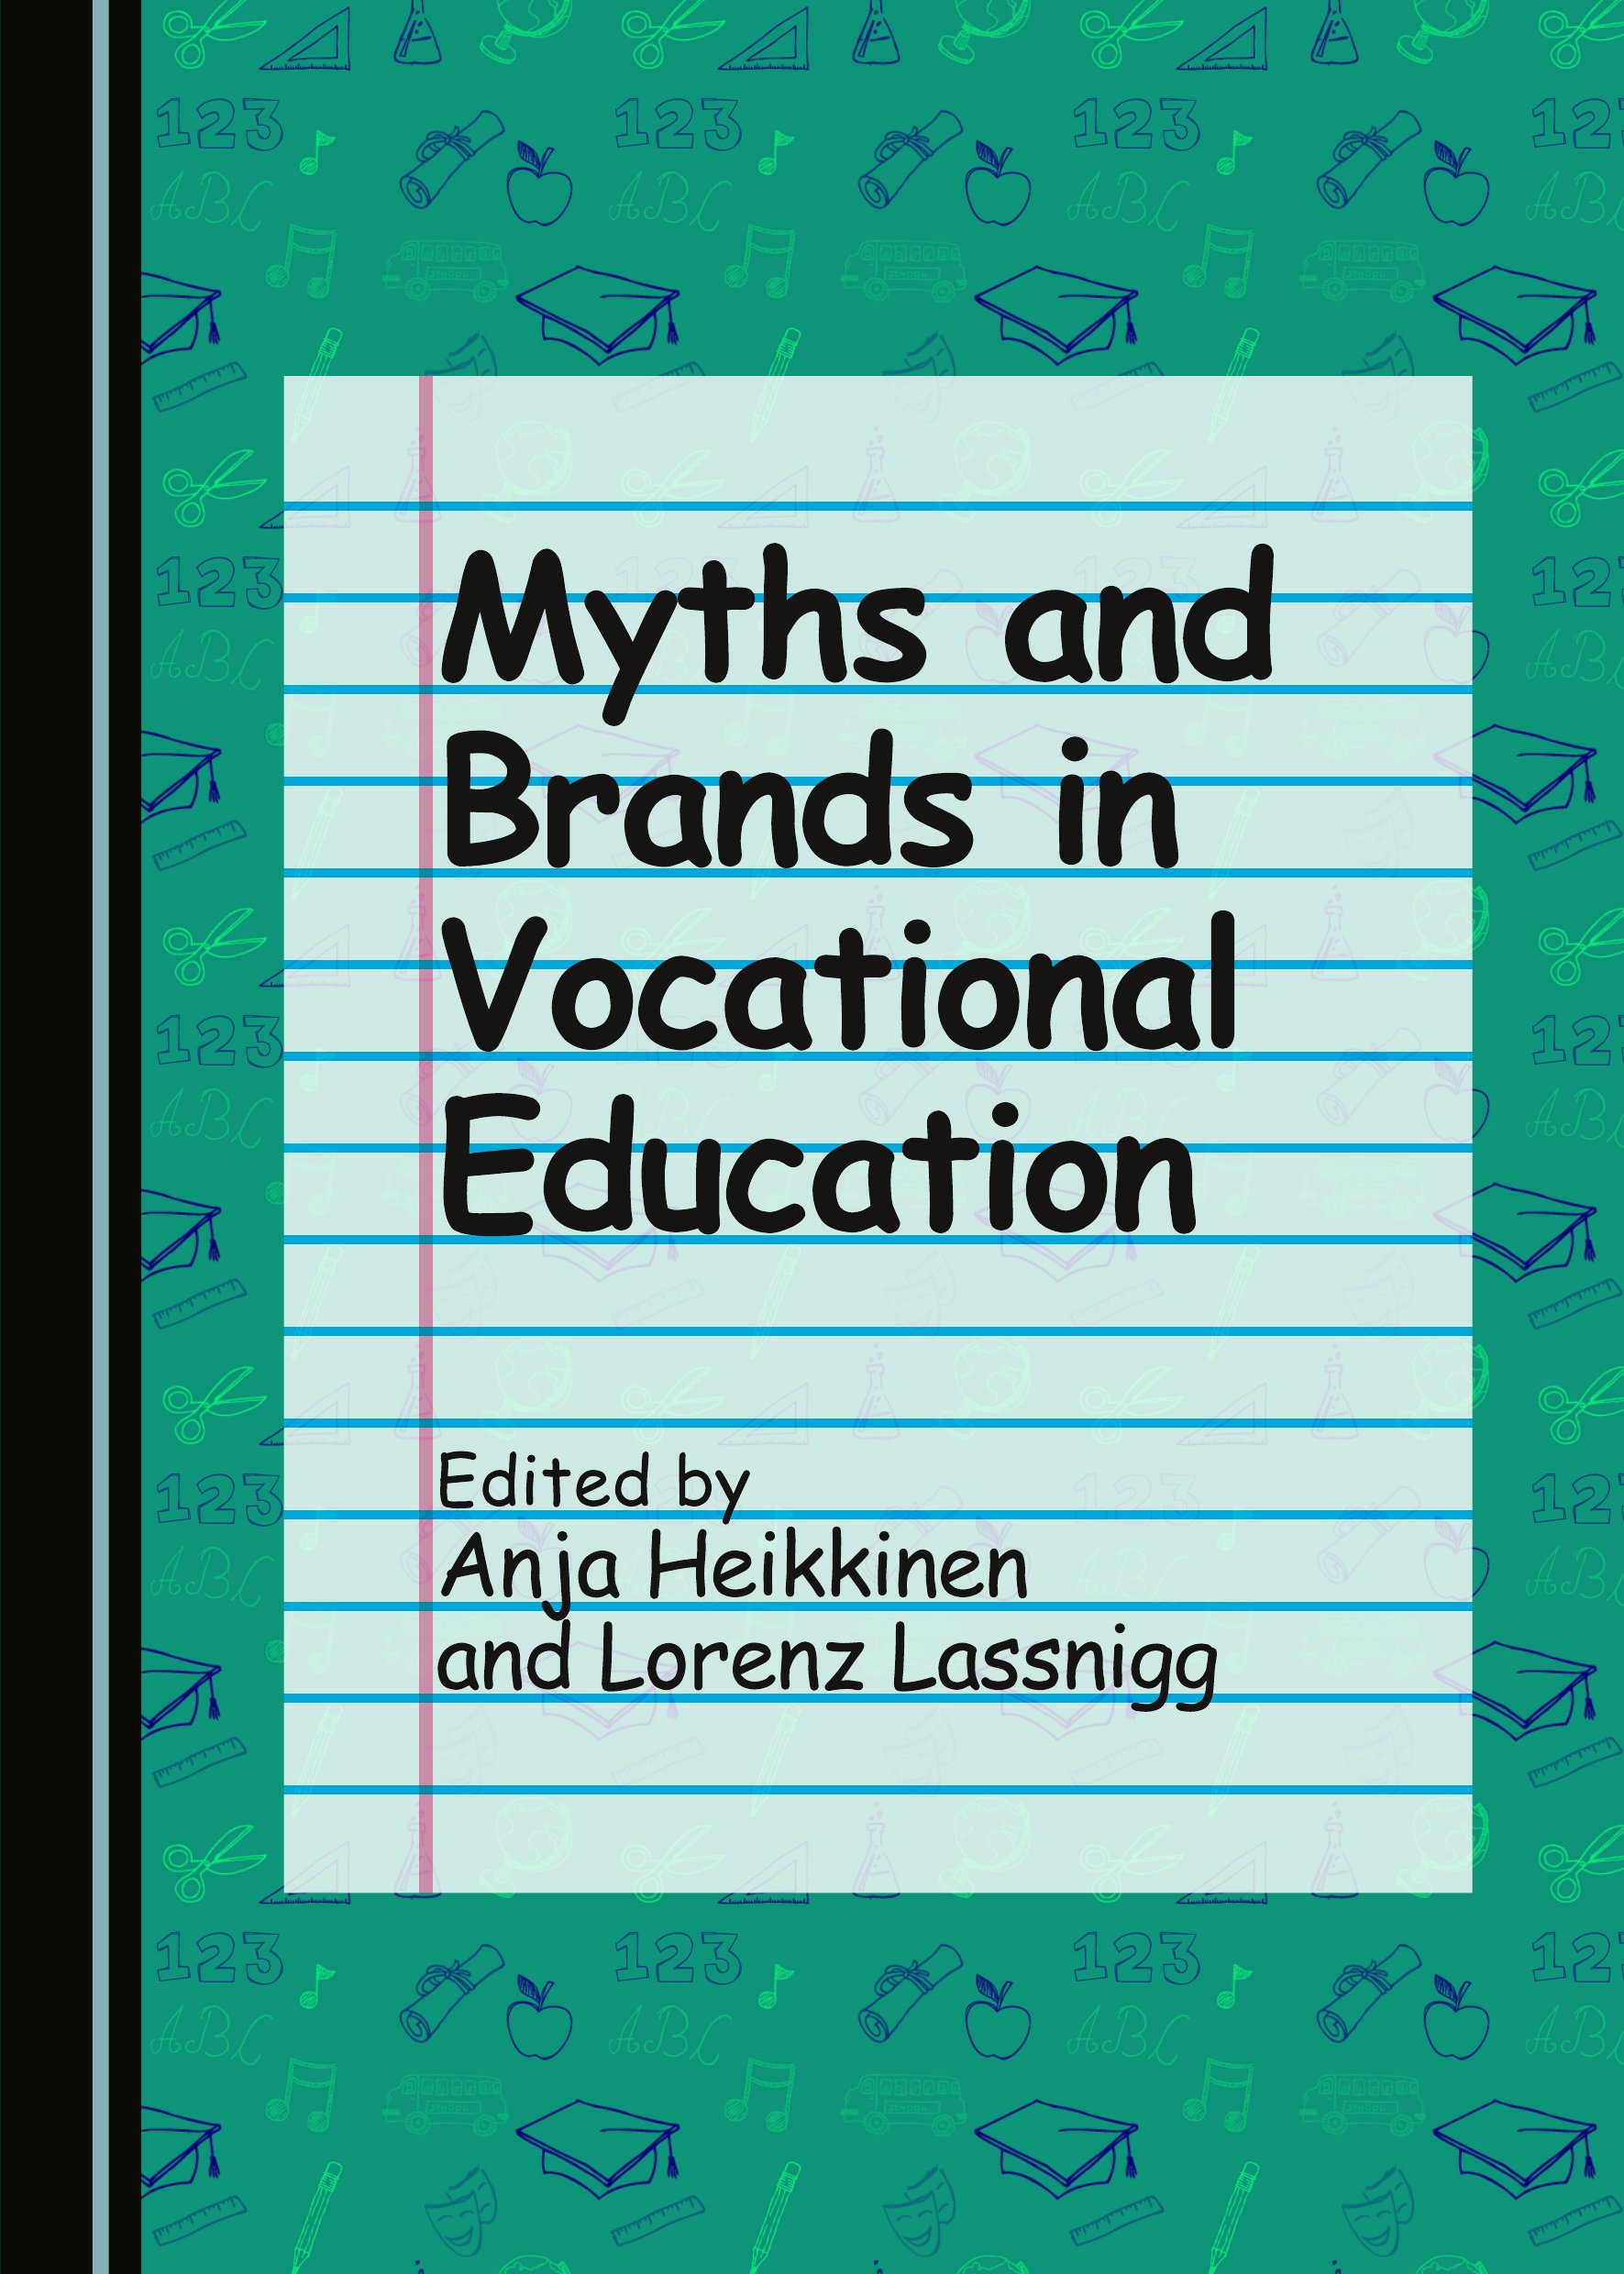 Myths and Brands in Vocational Education